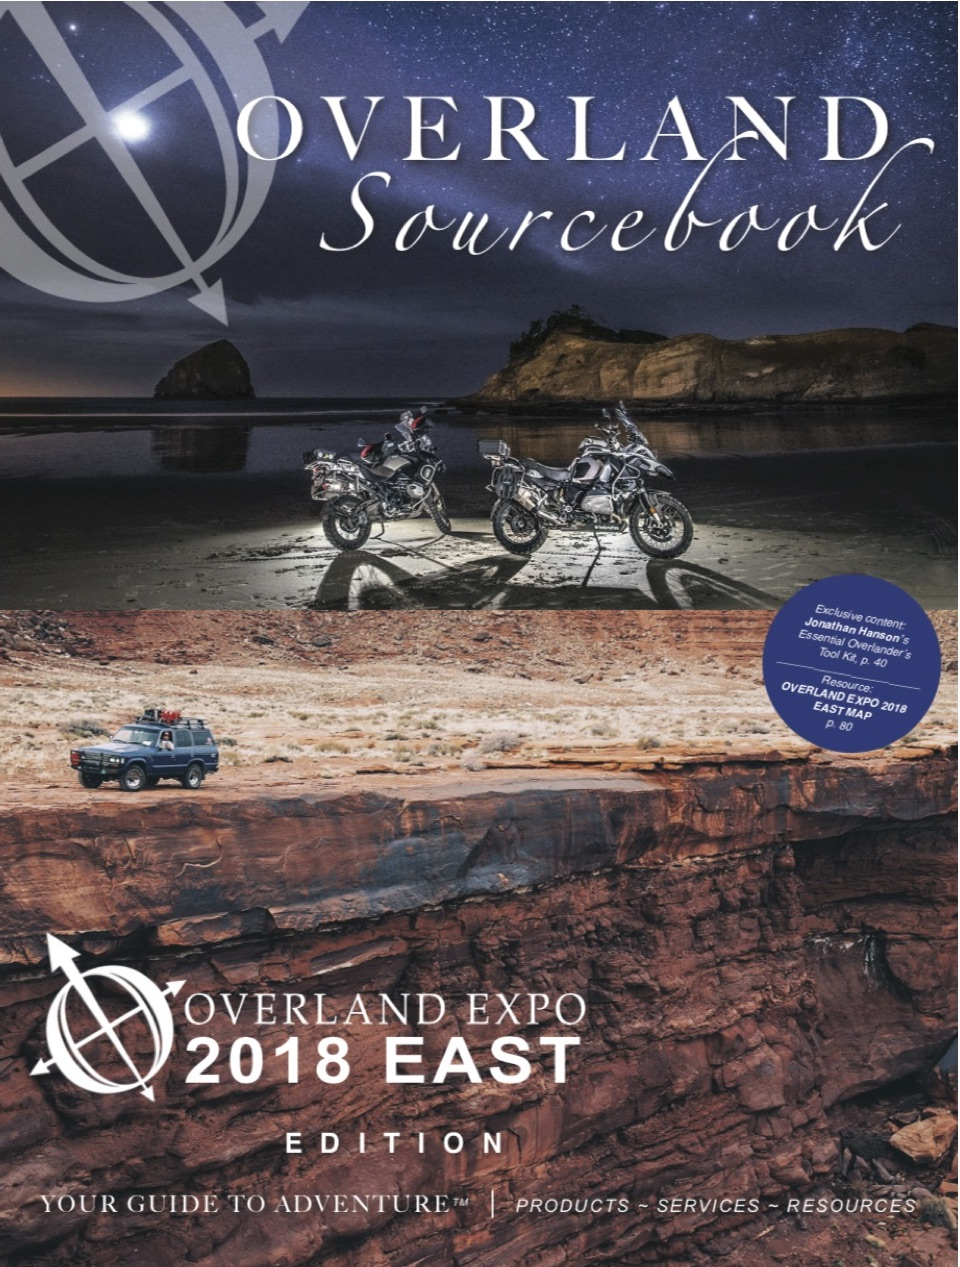 18E Sourcebook Cover Main.jpg